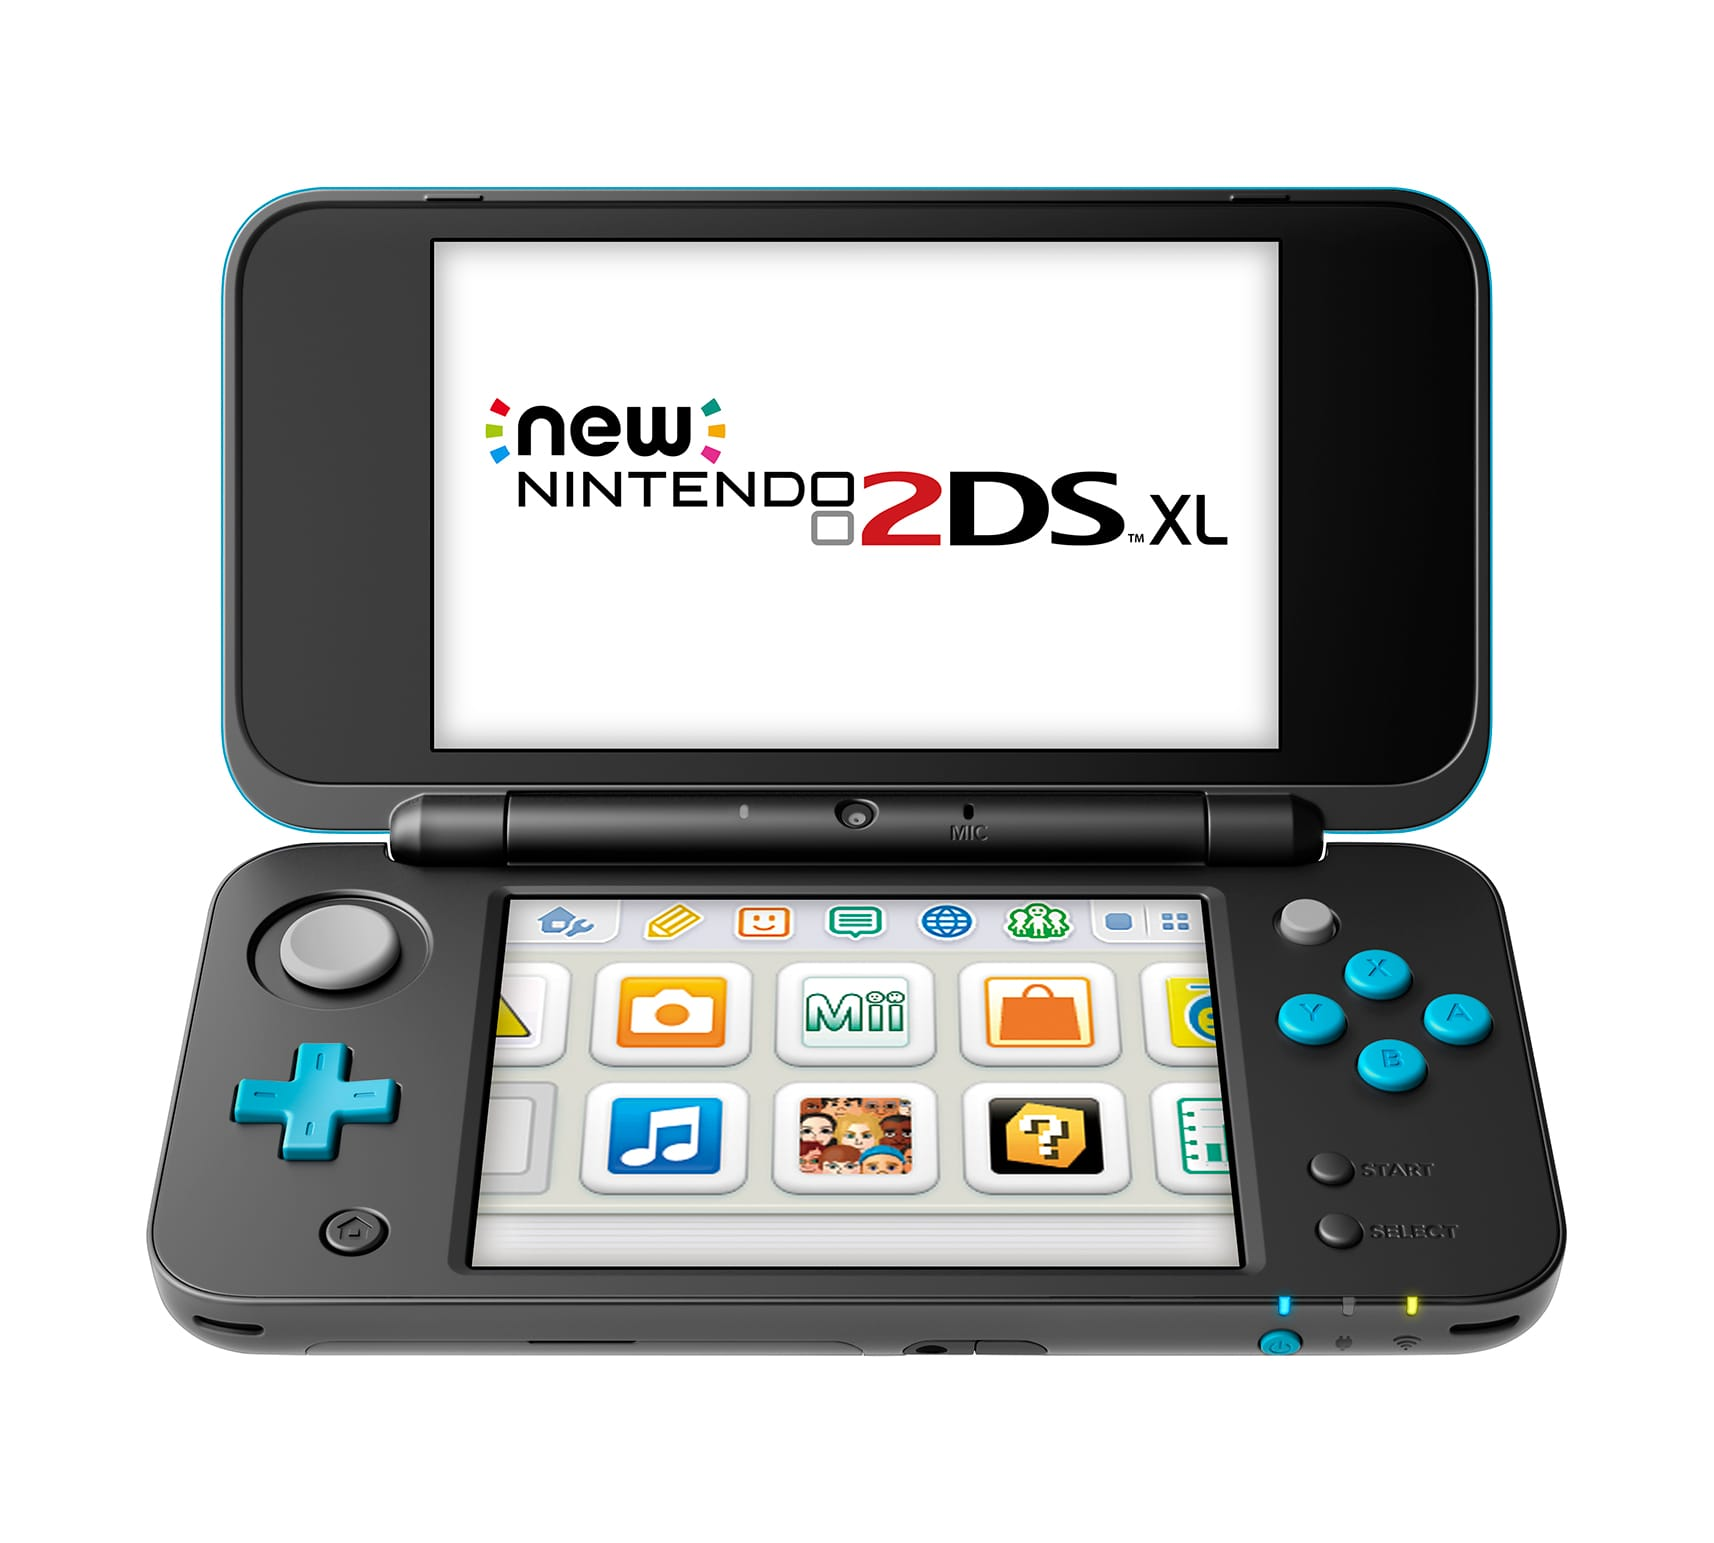 New Nintendo 2DS XL Console w/ Mario Kart 7 (Black/Turquoise)